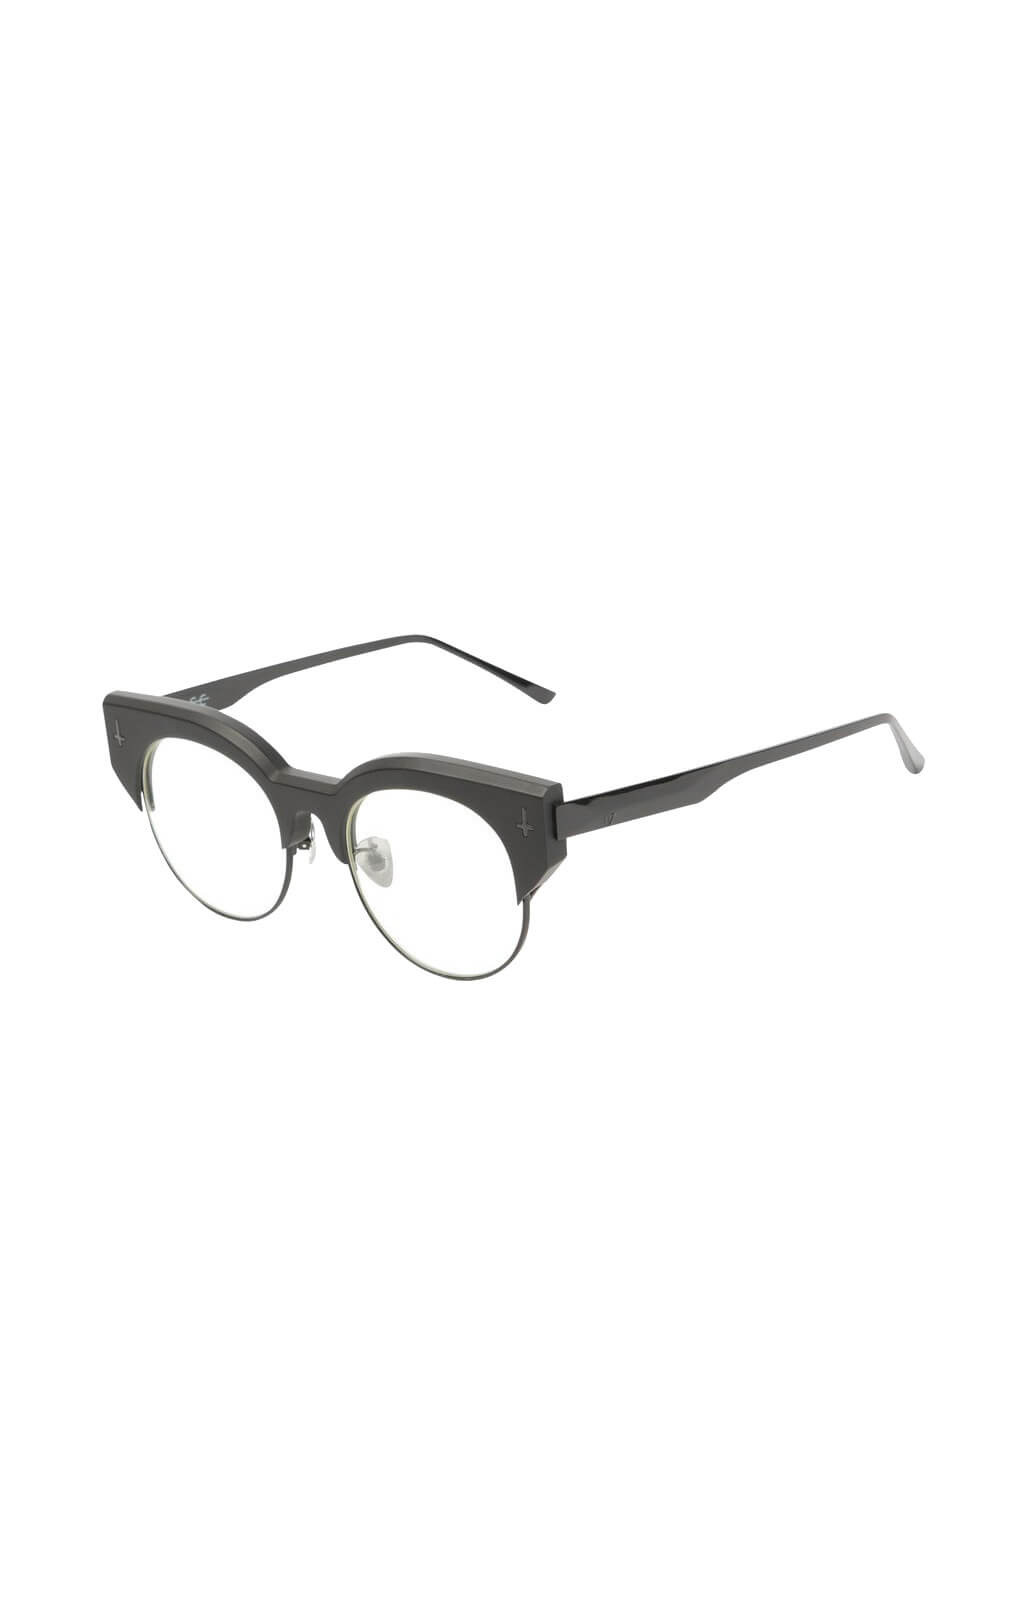 valley adcc II optical glasses black matte